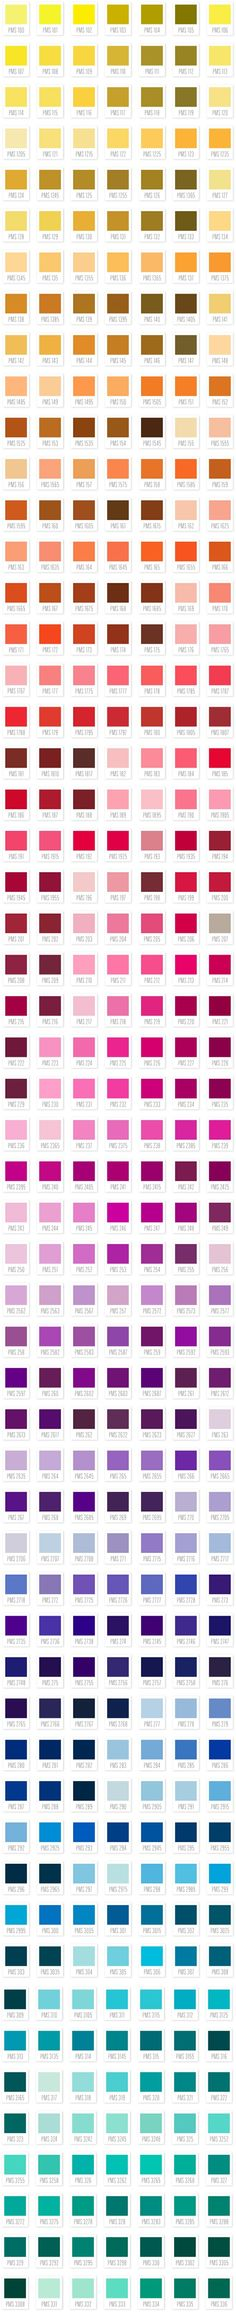 Pantonesoliduncoated Color Theory Pinterest Mood Boards